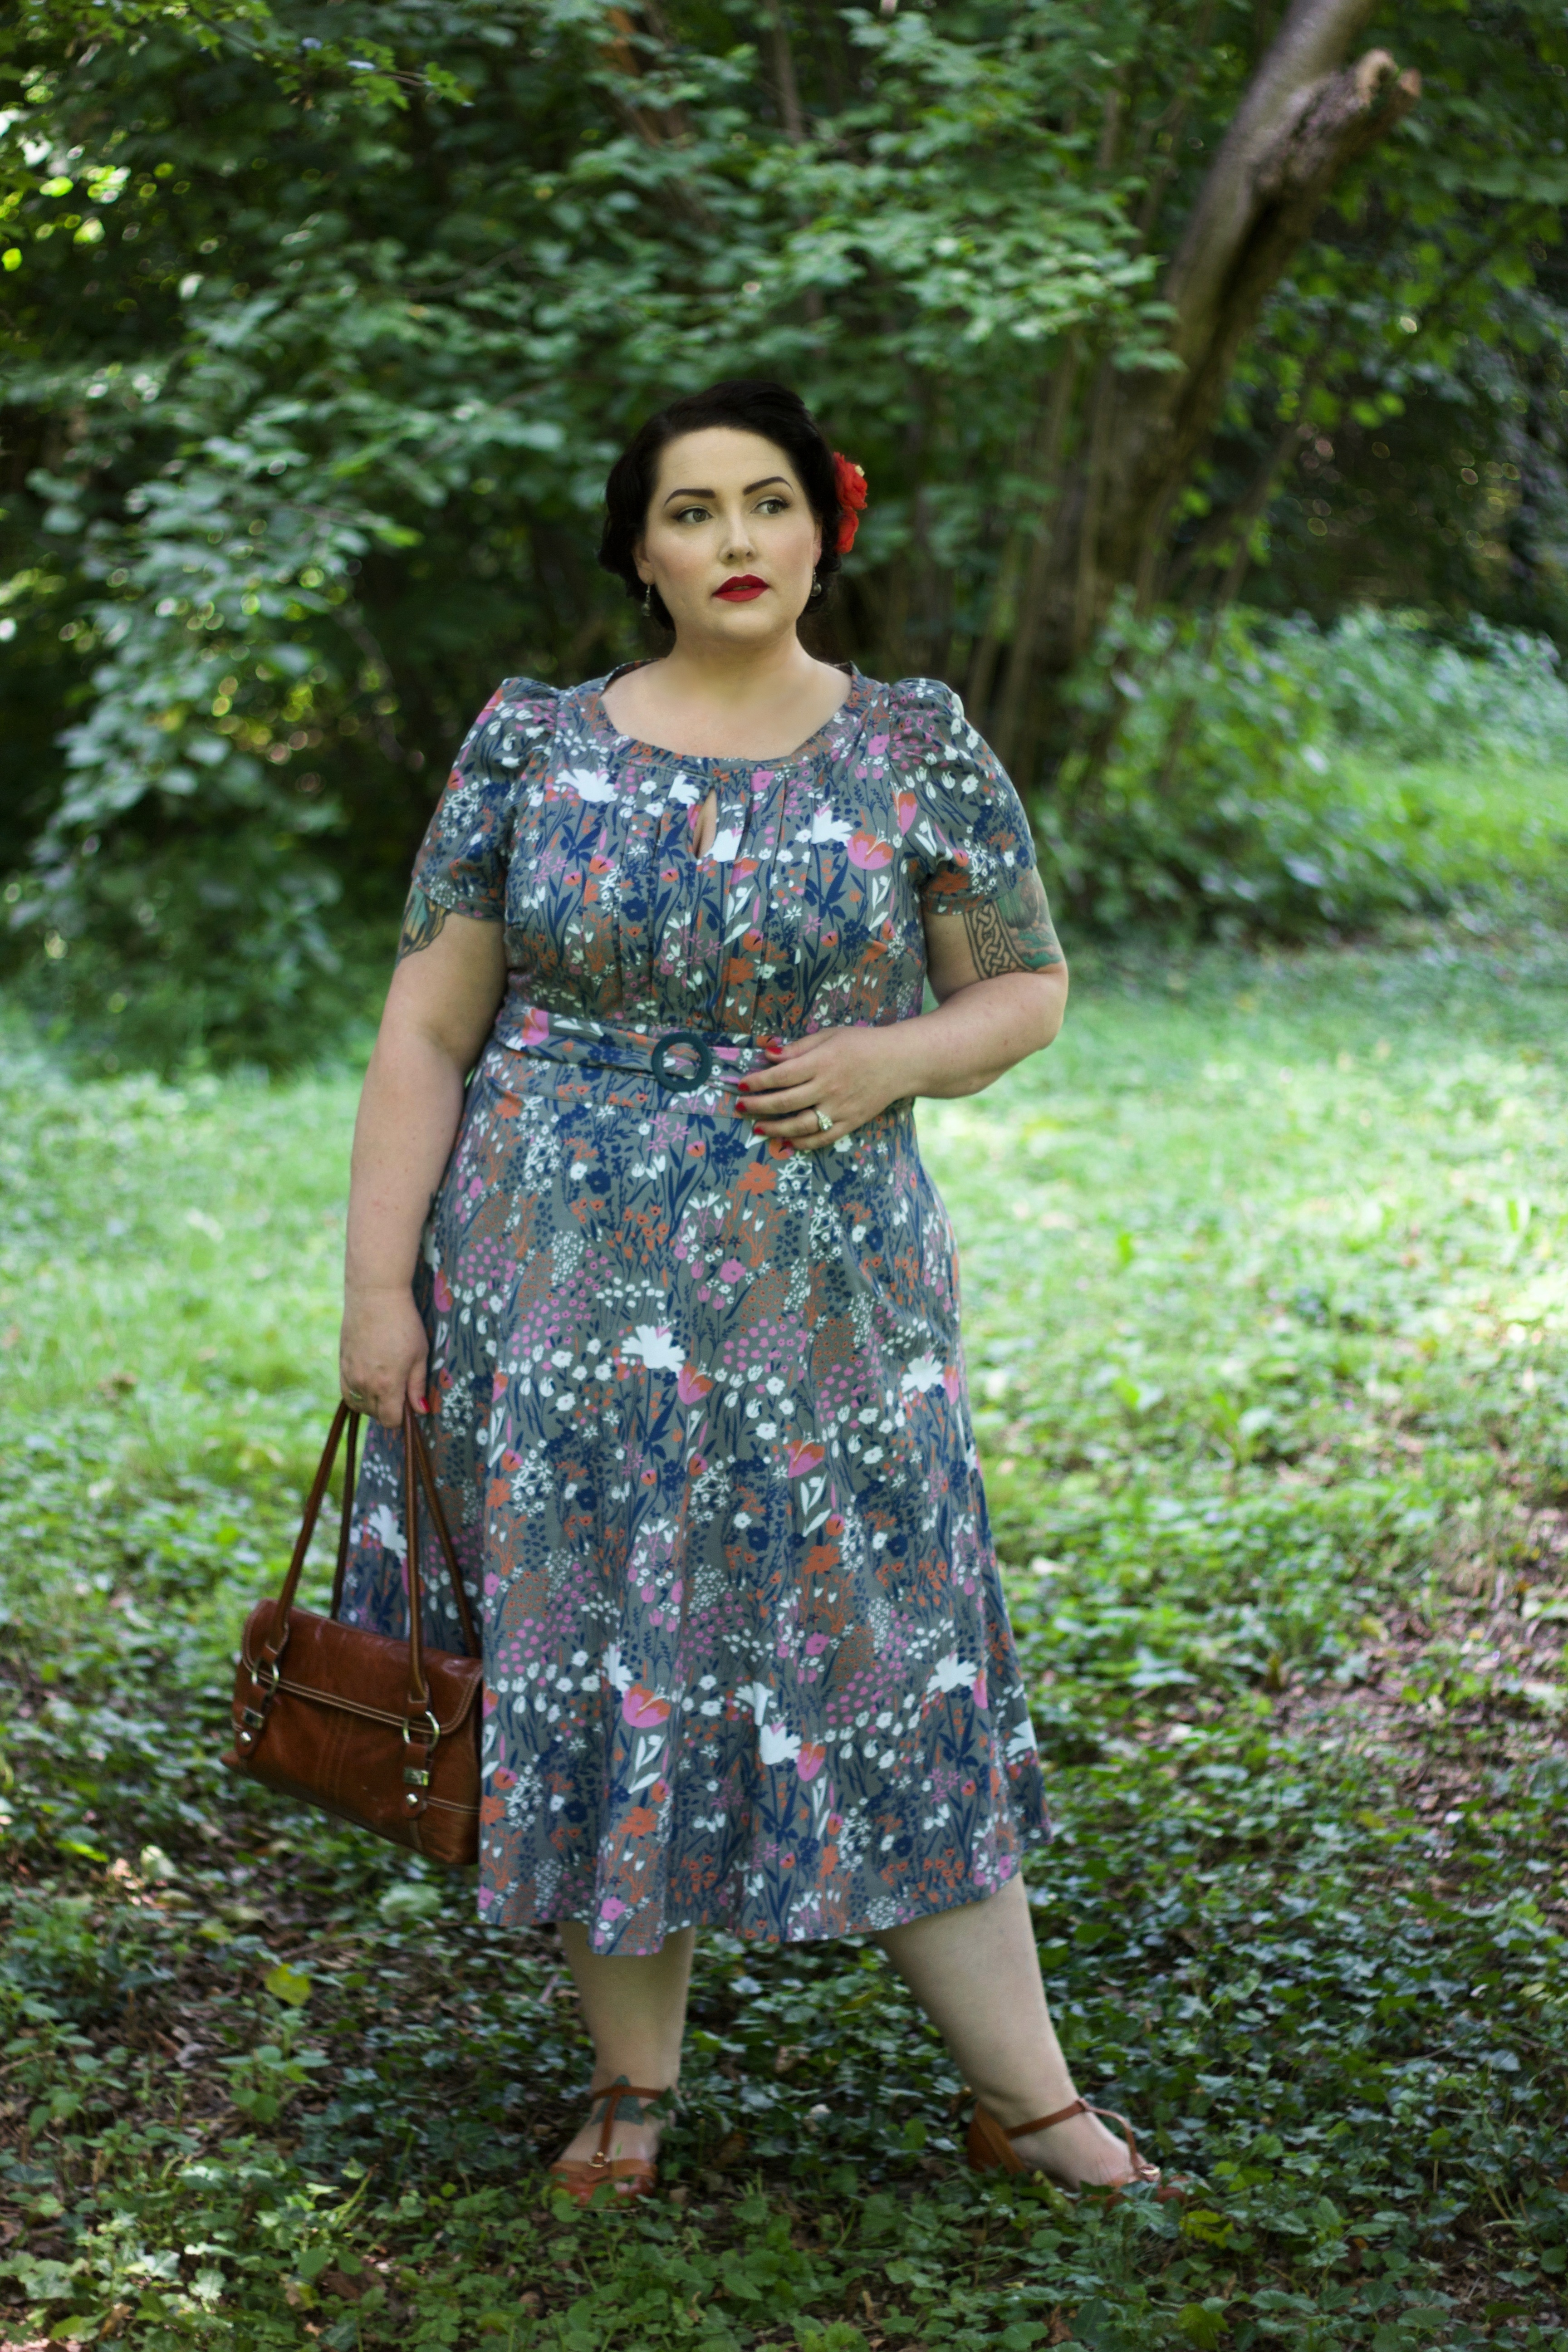 Vintage style woman in grey floral dress